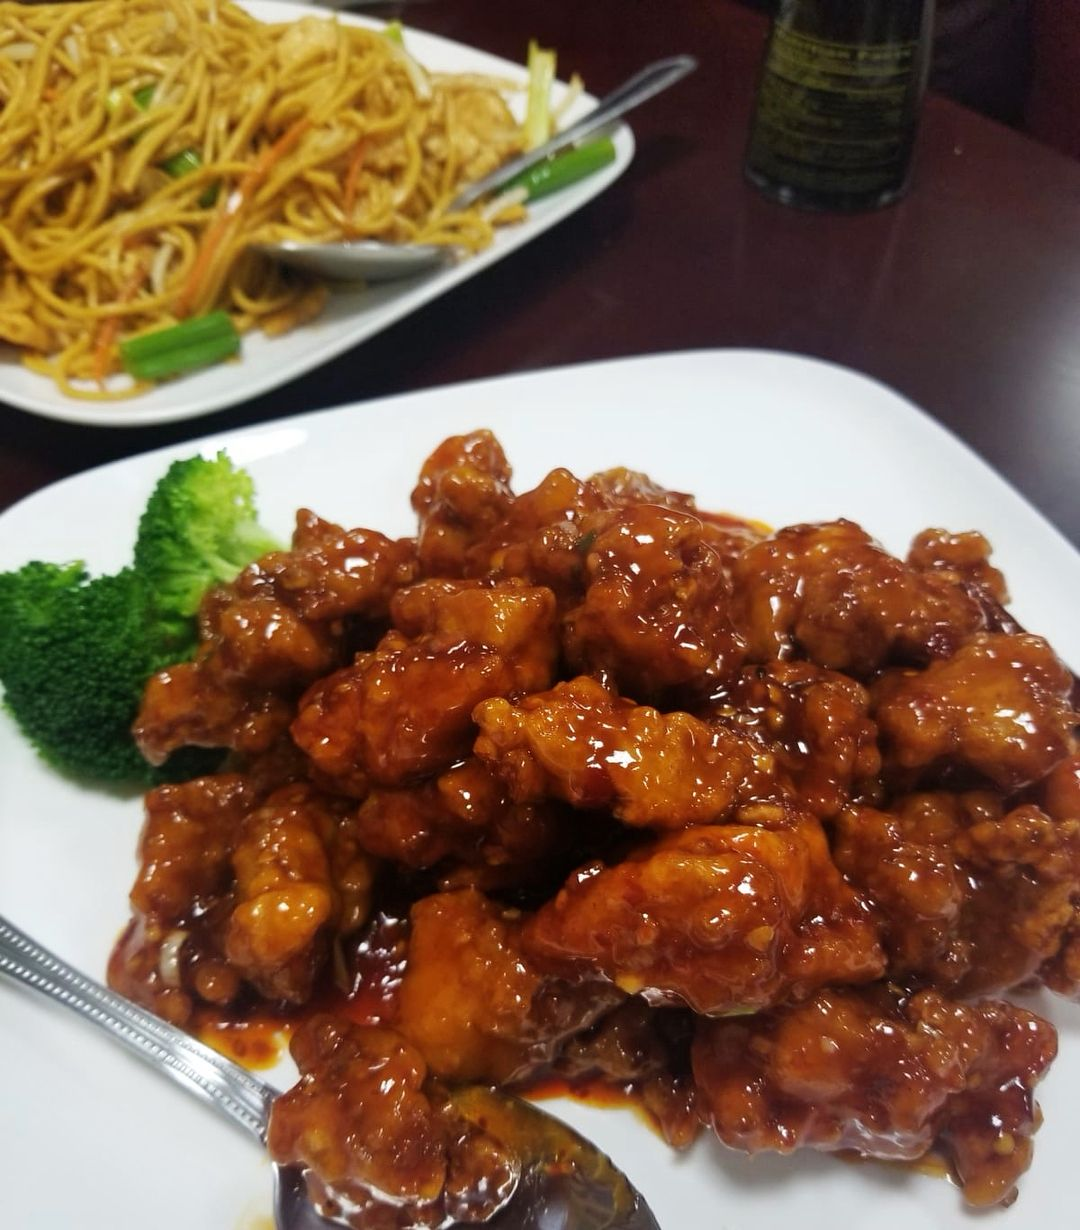 Htx Halal Eats On Instagram Hey Guys If Your Looking For A Halal Chinese Place With Good Food 888 Beijing Chinese Restaurant On Hilcroft Ha Chinese Restaurant Halal Chinese Food